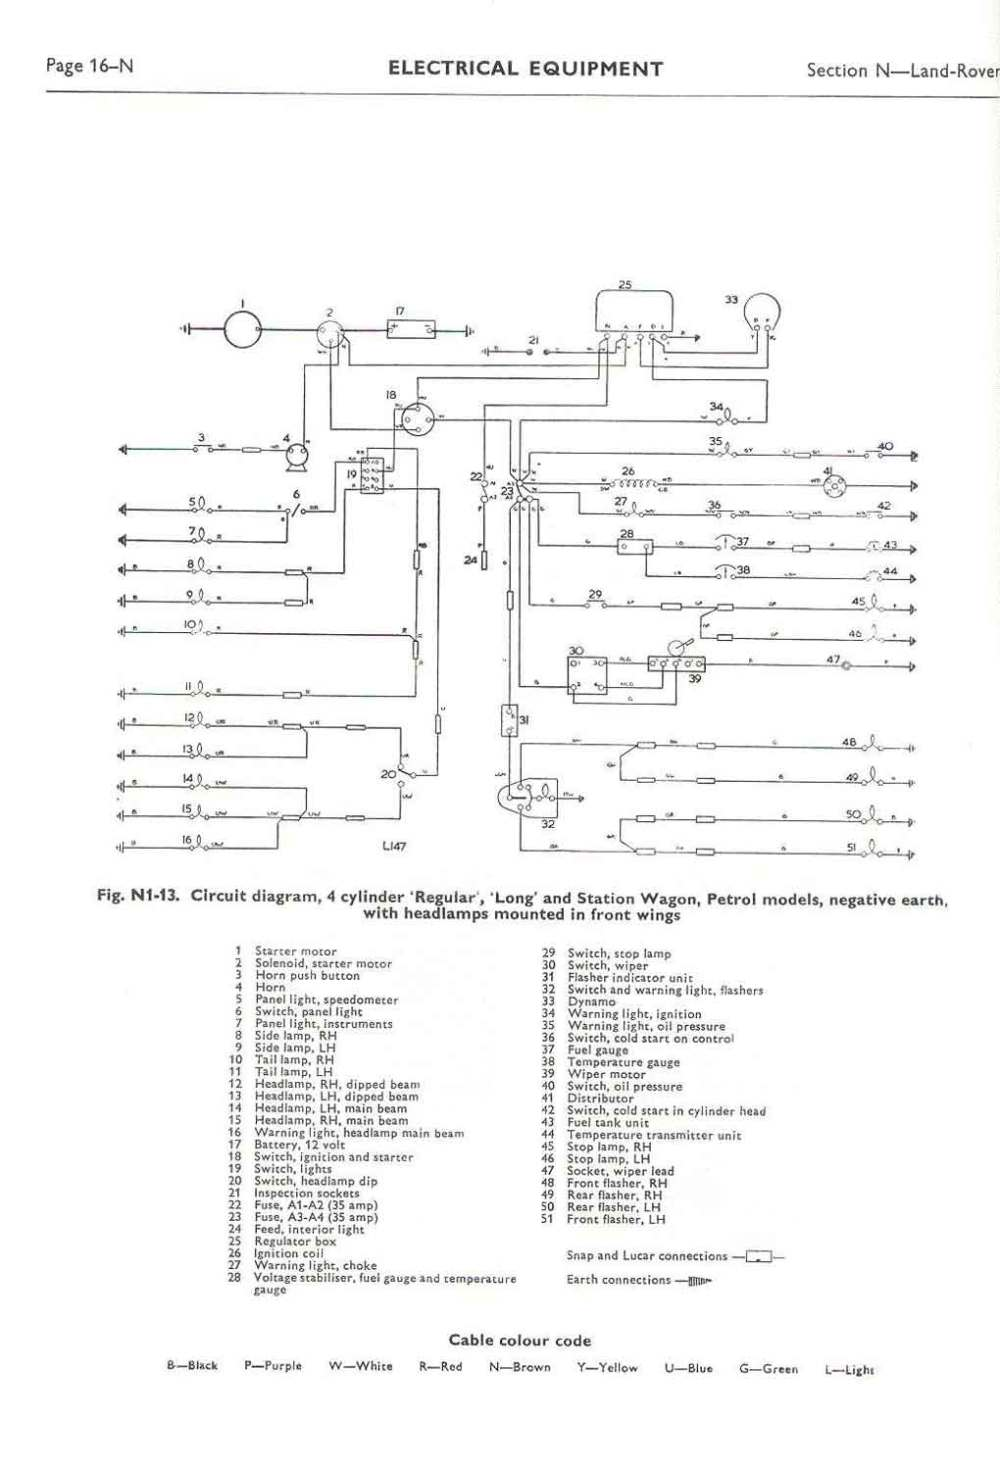 medium resolution of land rover series ii wiring diagram wiring schematic data rh 9 american football ausruestung de land rover series 3 wiring diagram land rover series 3